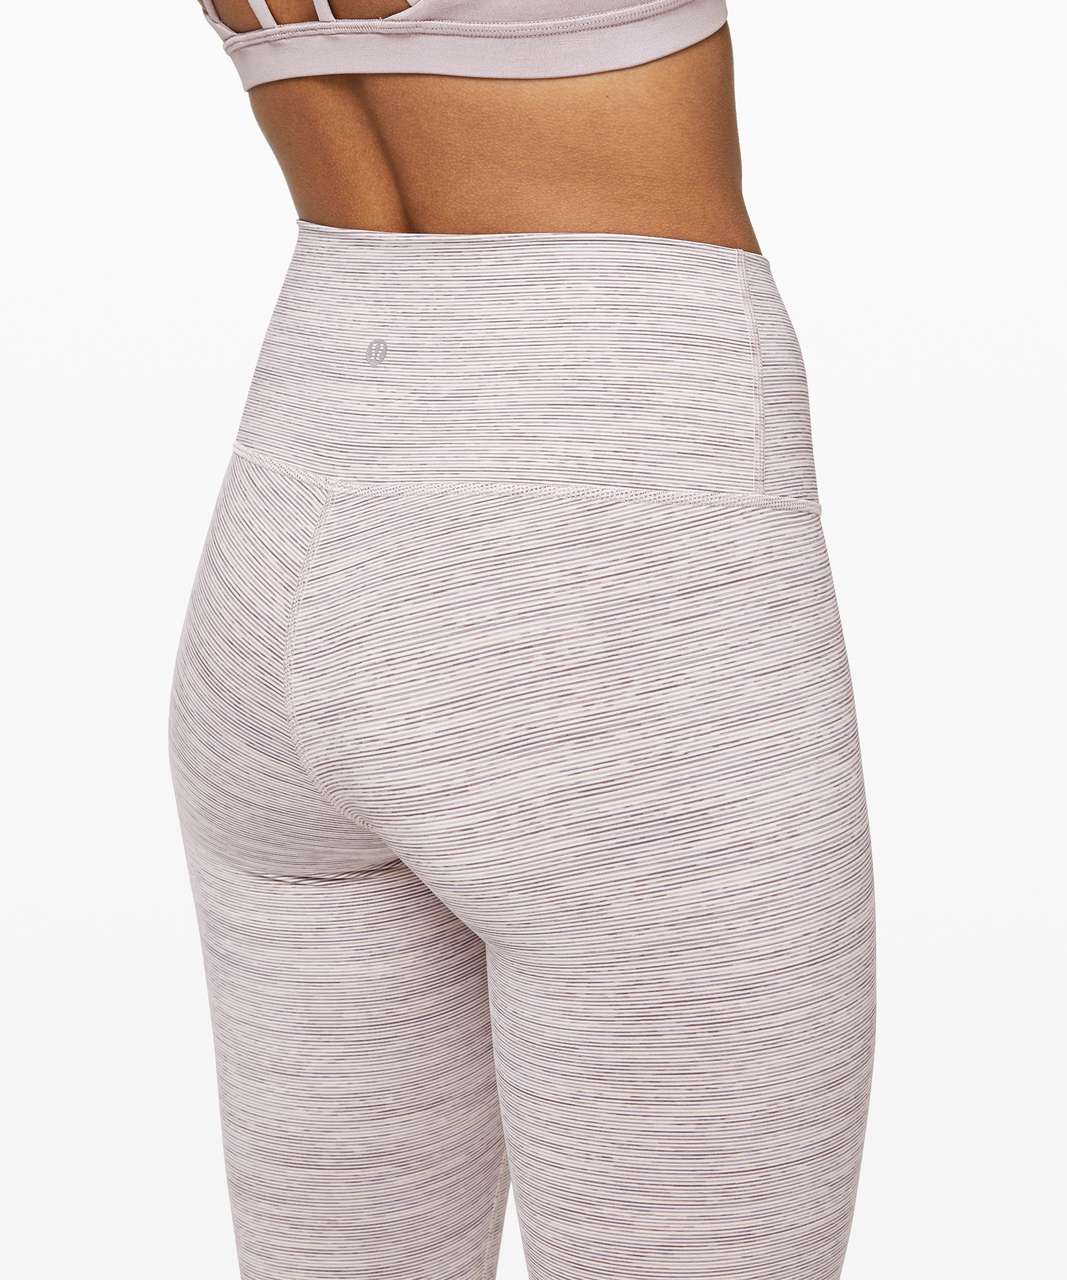 "Lululemon Wunder Under High Rise Tight 28"" *Luxtreme - Wee Are From Space Pink Bliss Vintage Mauve"